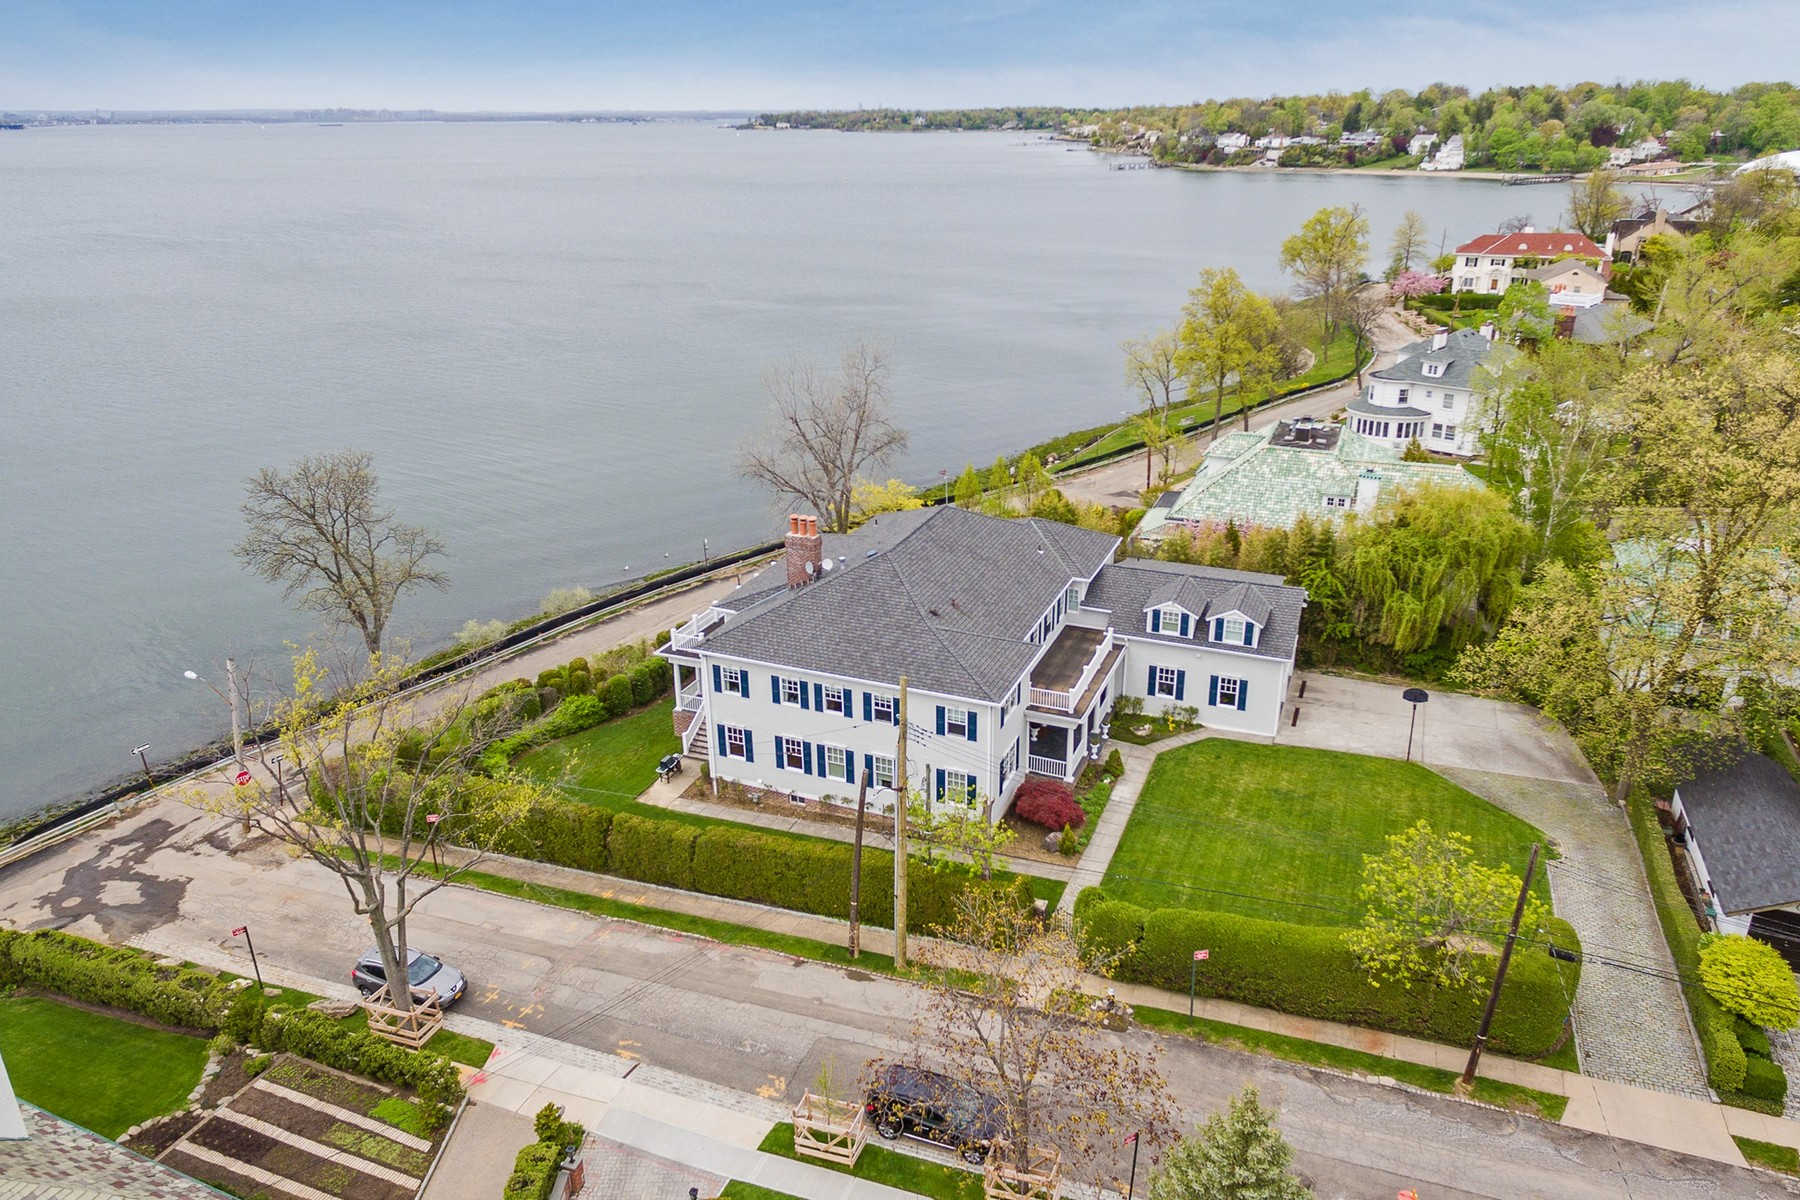 Maison unifamiliale pour l Vente à Waterfront 1 Richmond Rd Douglaston, New York, 11363 États-Unis